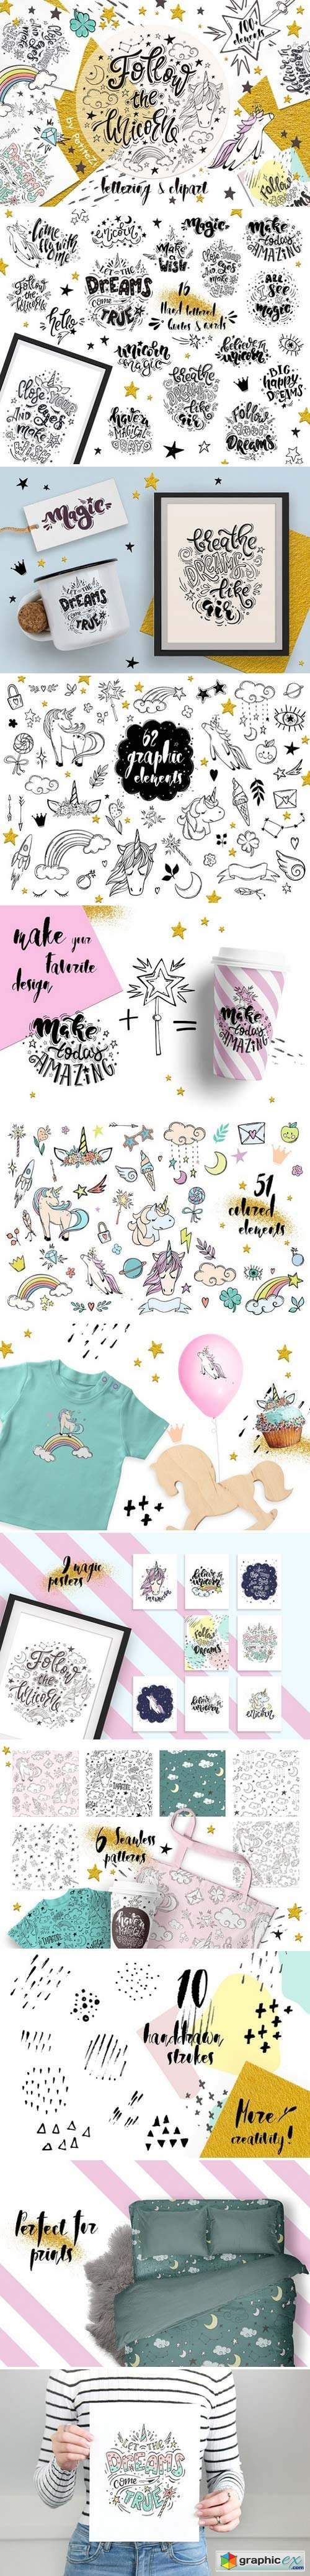 Follow the unicorn: clipart&letters